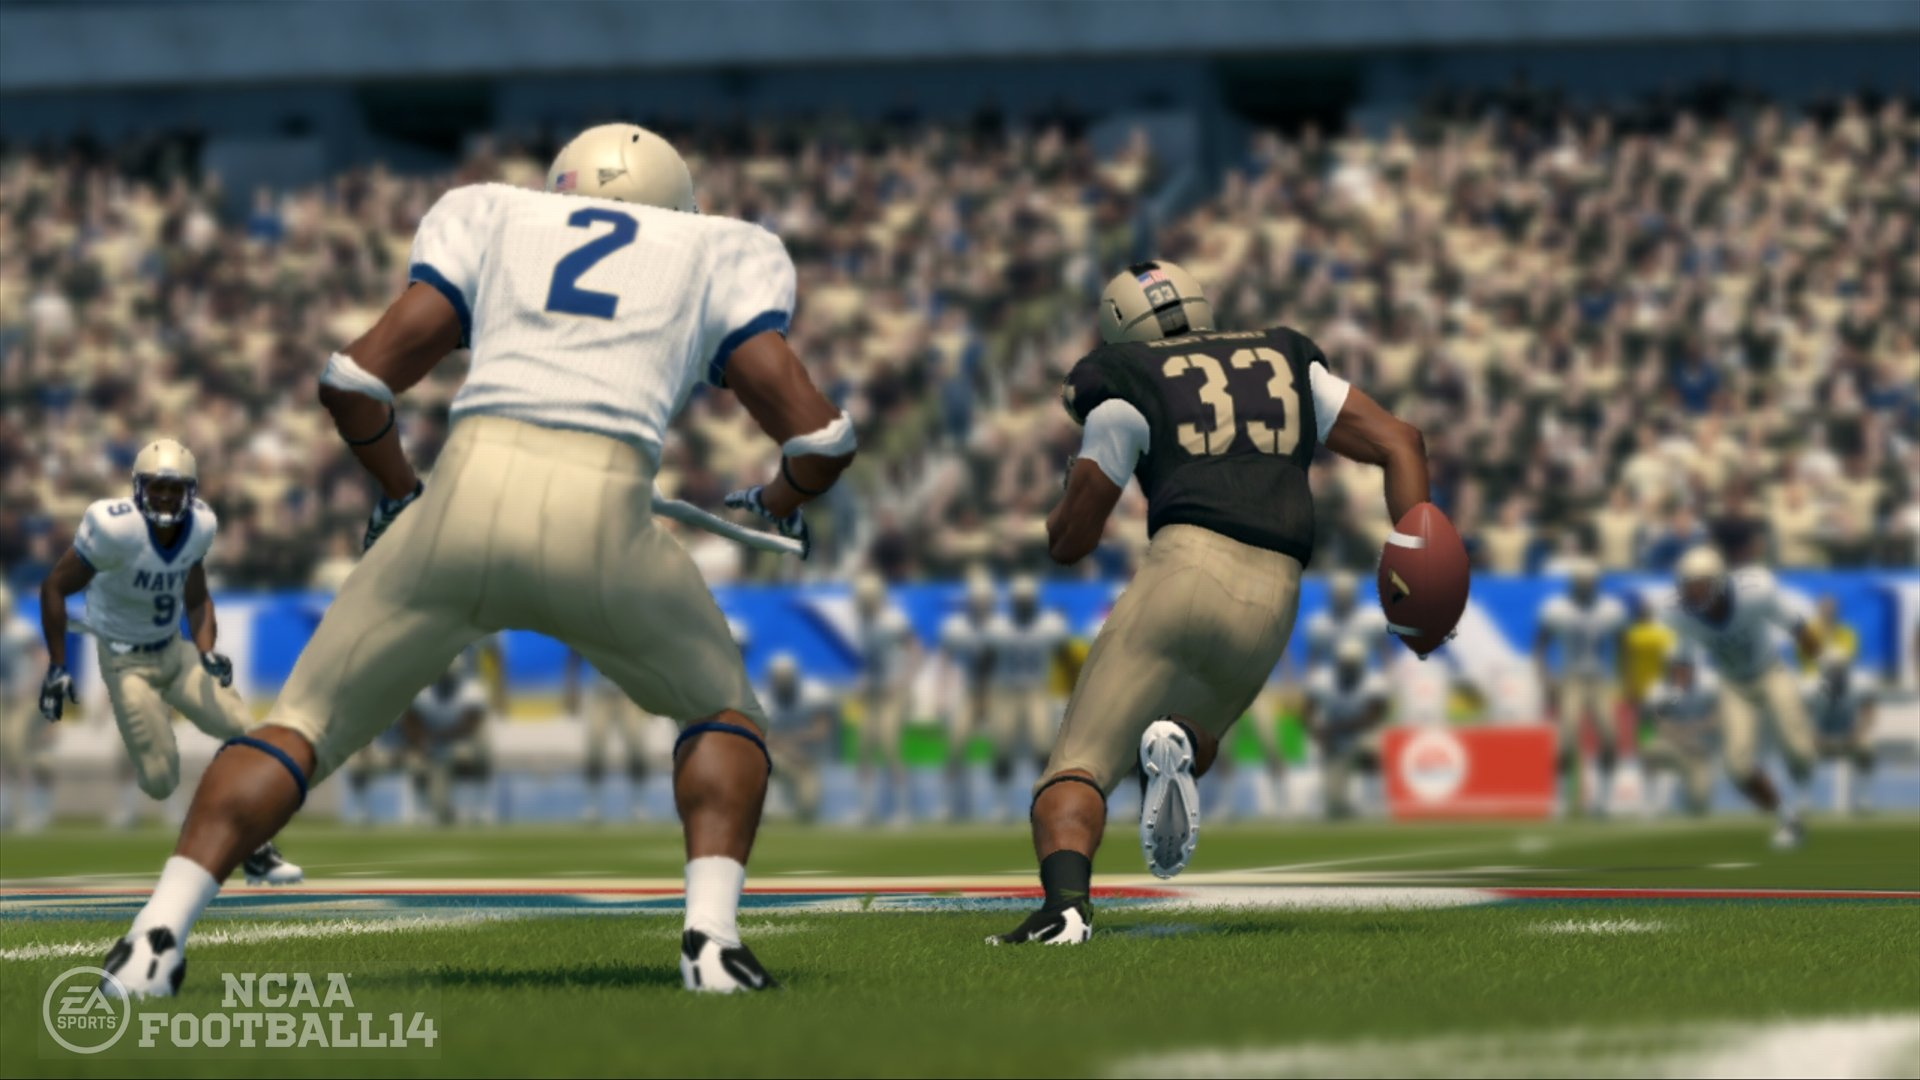 20/4/2013 - NCAA 14 - Screen 6